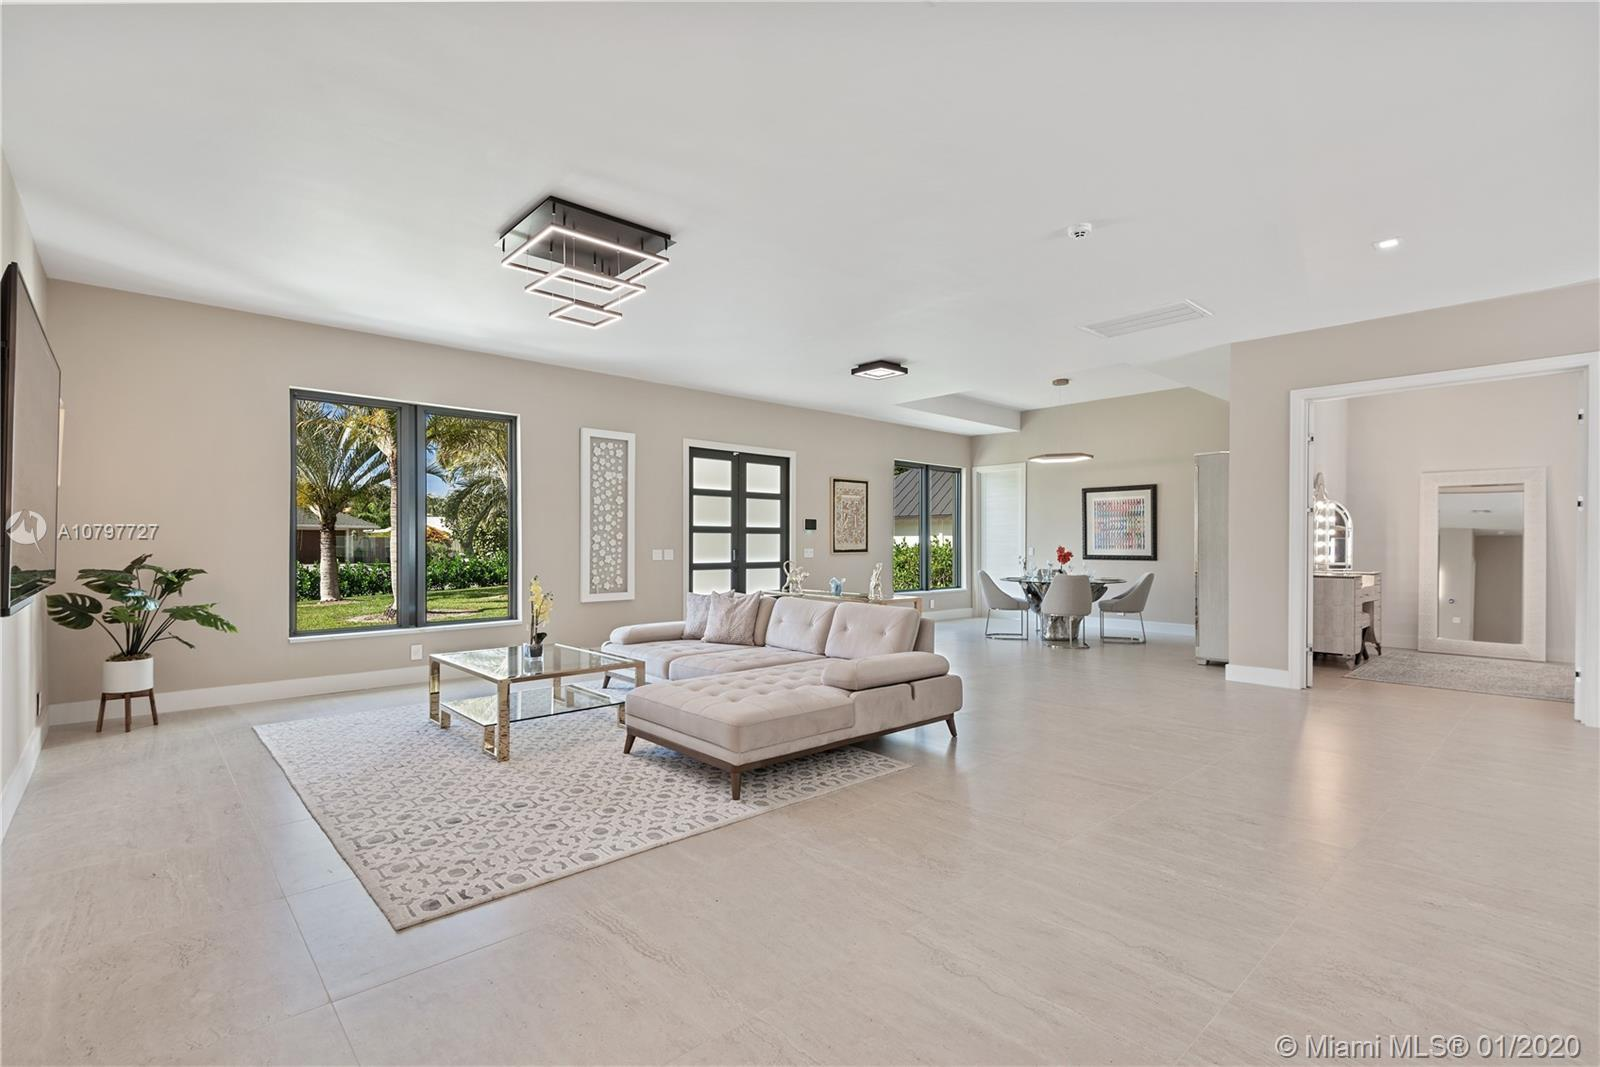 Modern and spacious 4-bedroom home decorated with warm, natural tones.  10-12 Ft. Ceilings throughou